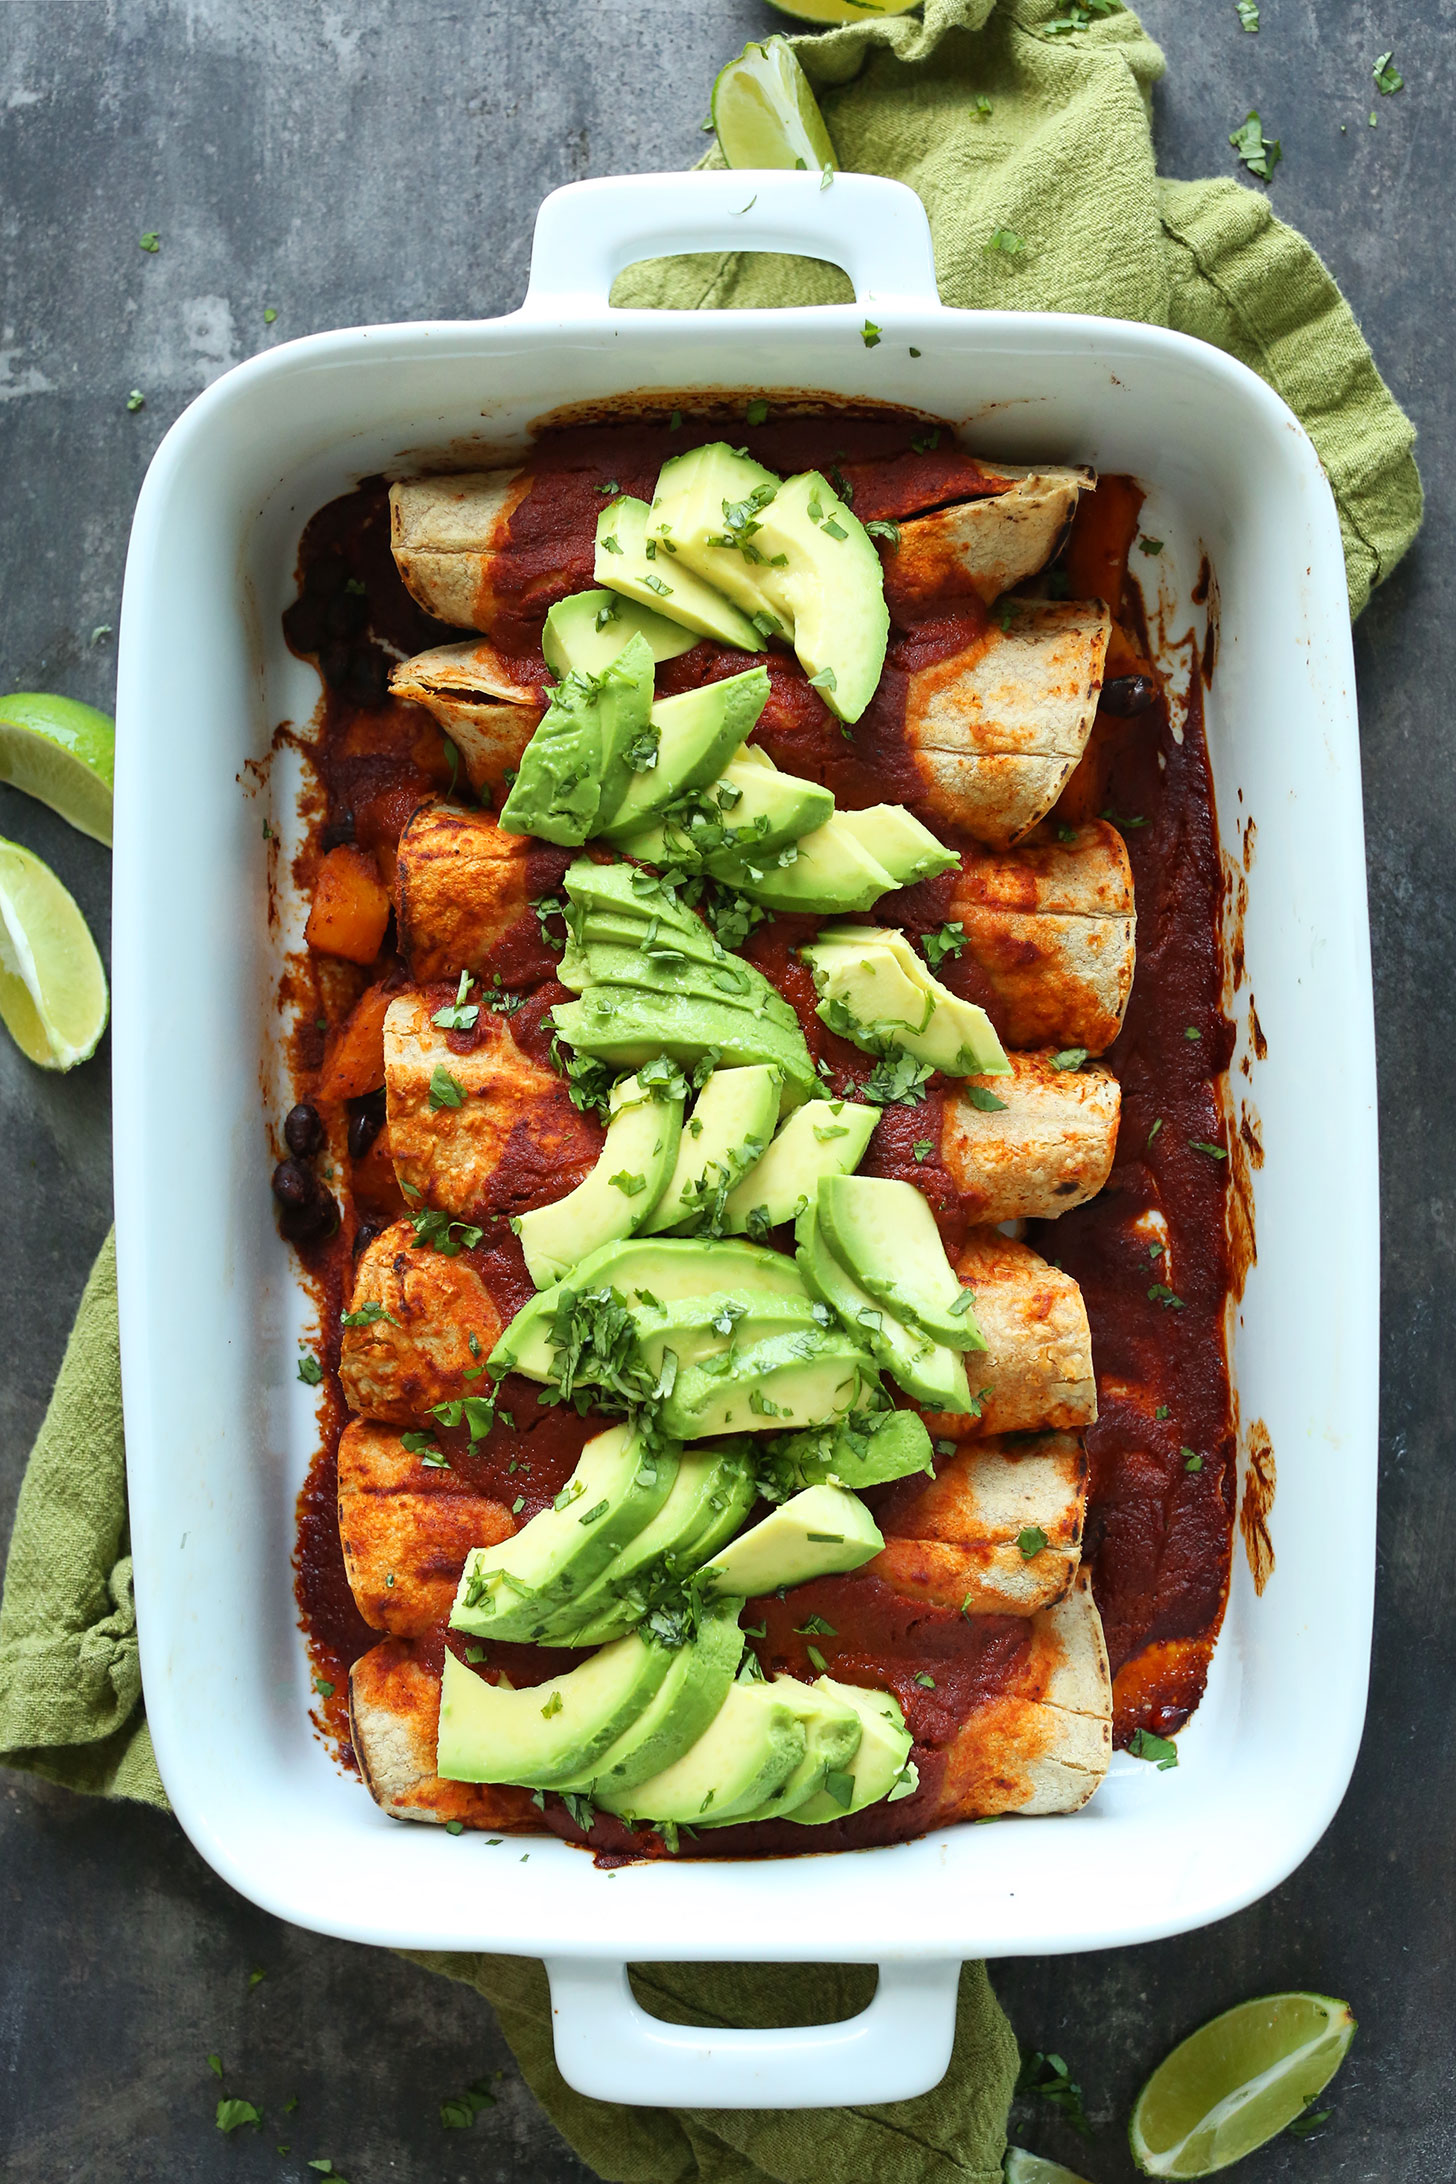 Ceramic dish filled with Butternut Squash Enchiladas topped with avocado